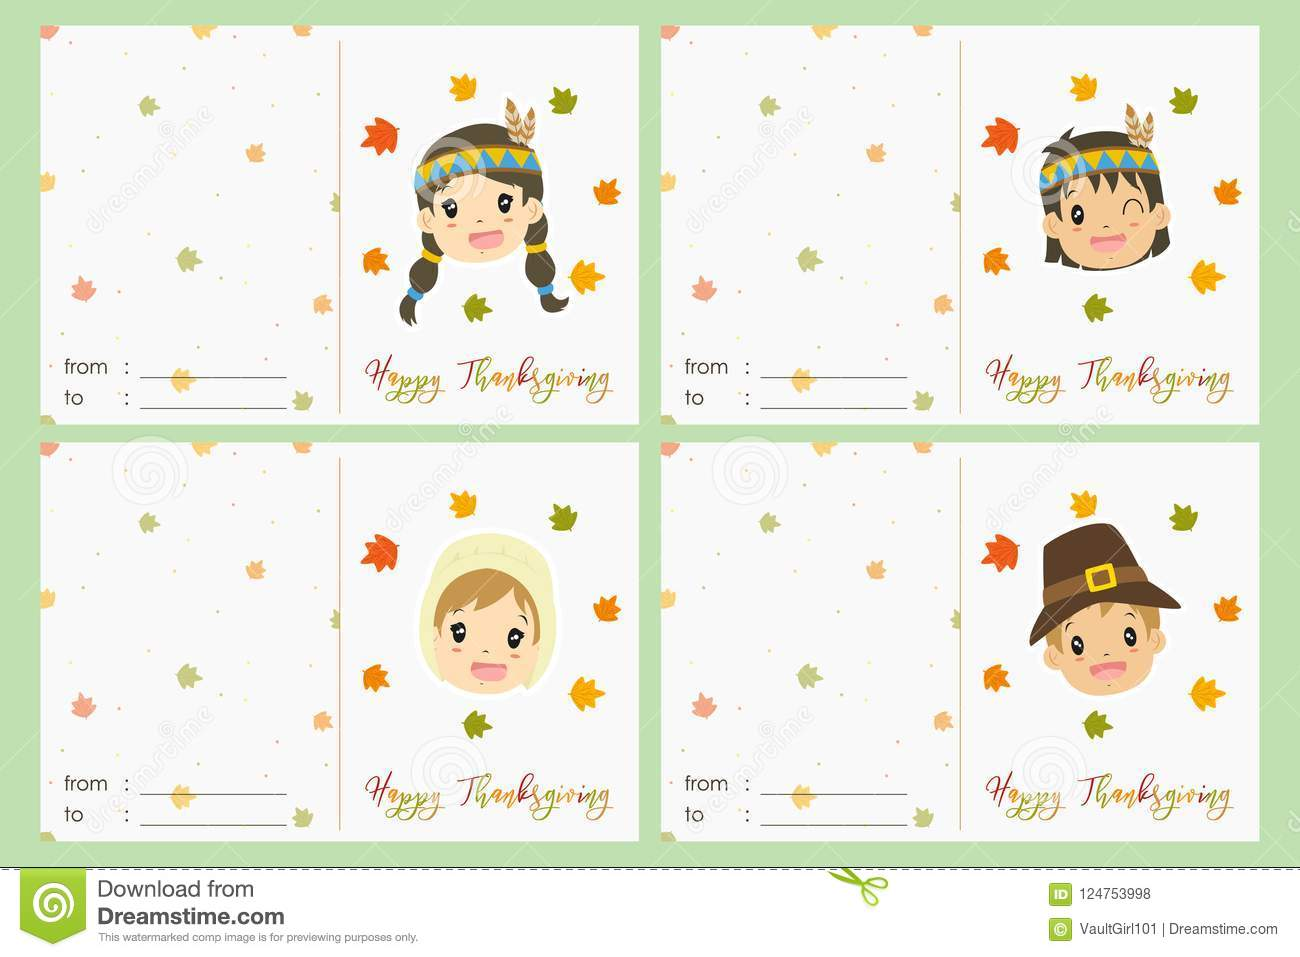 photograph about Printable Thanksgiving Cards known as Content Thanksgiving Social gathering Card Vector Preset Inventory Vector